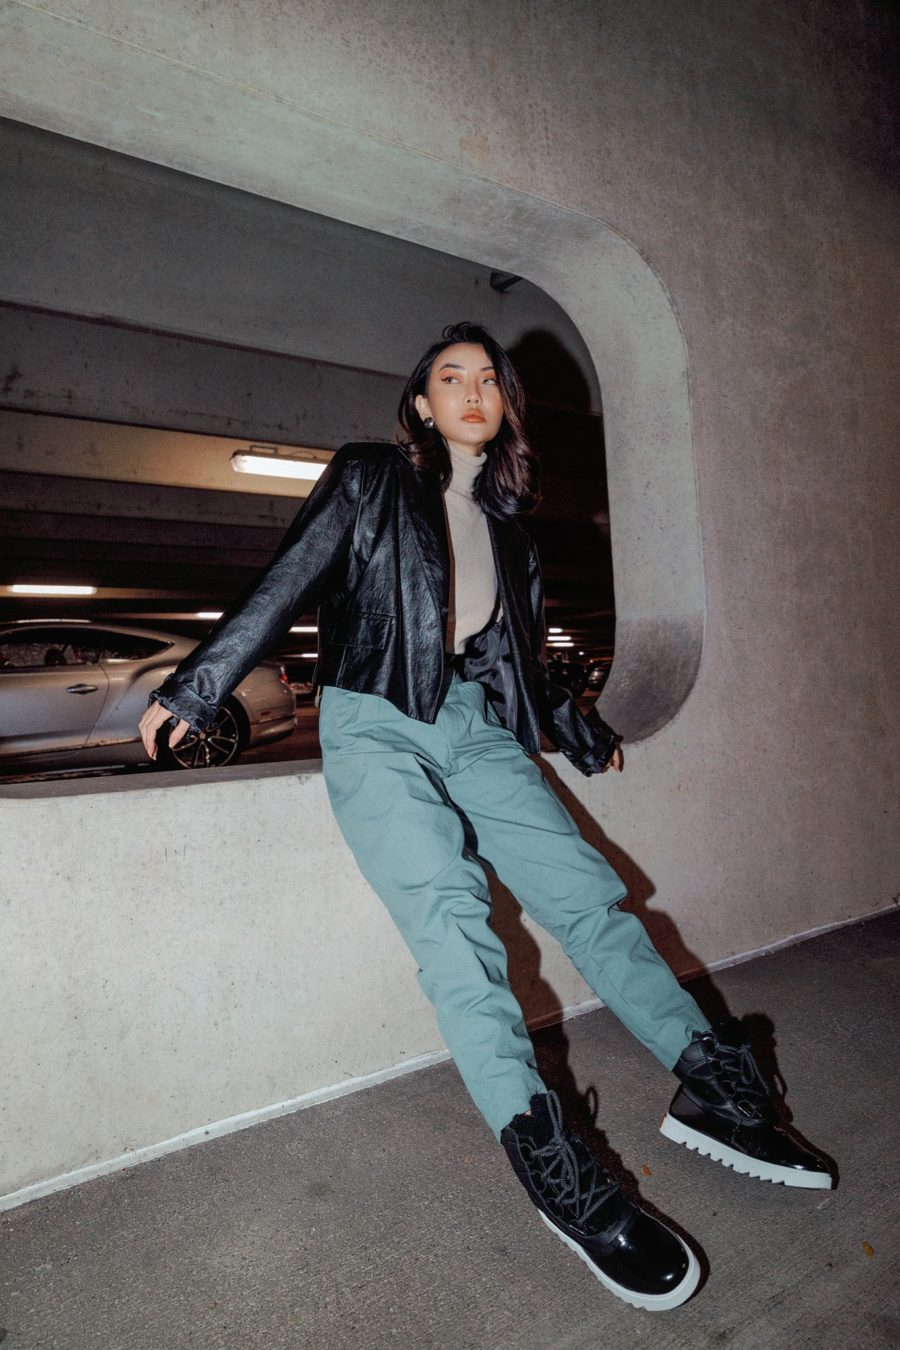 jessica wang wearing sorel winter boots with jeans and a leather jacket // Jessica Wang - Notjessfashion.com